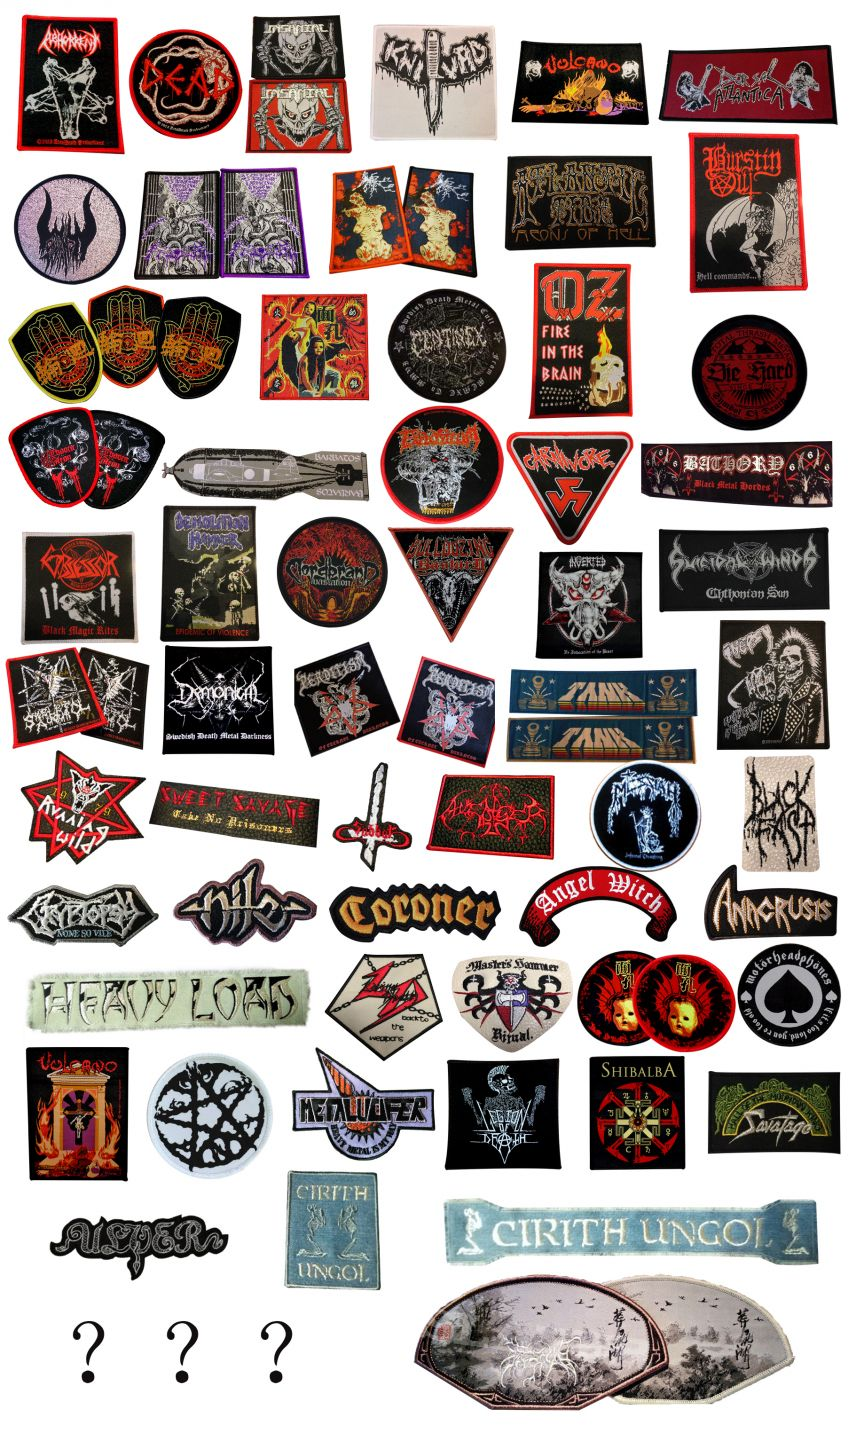 Patches I created over the years (non-MDP stuffs)